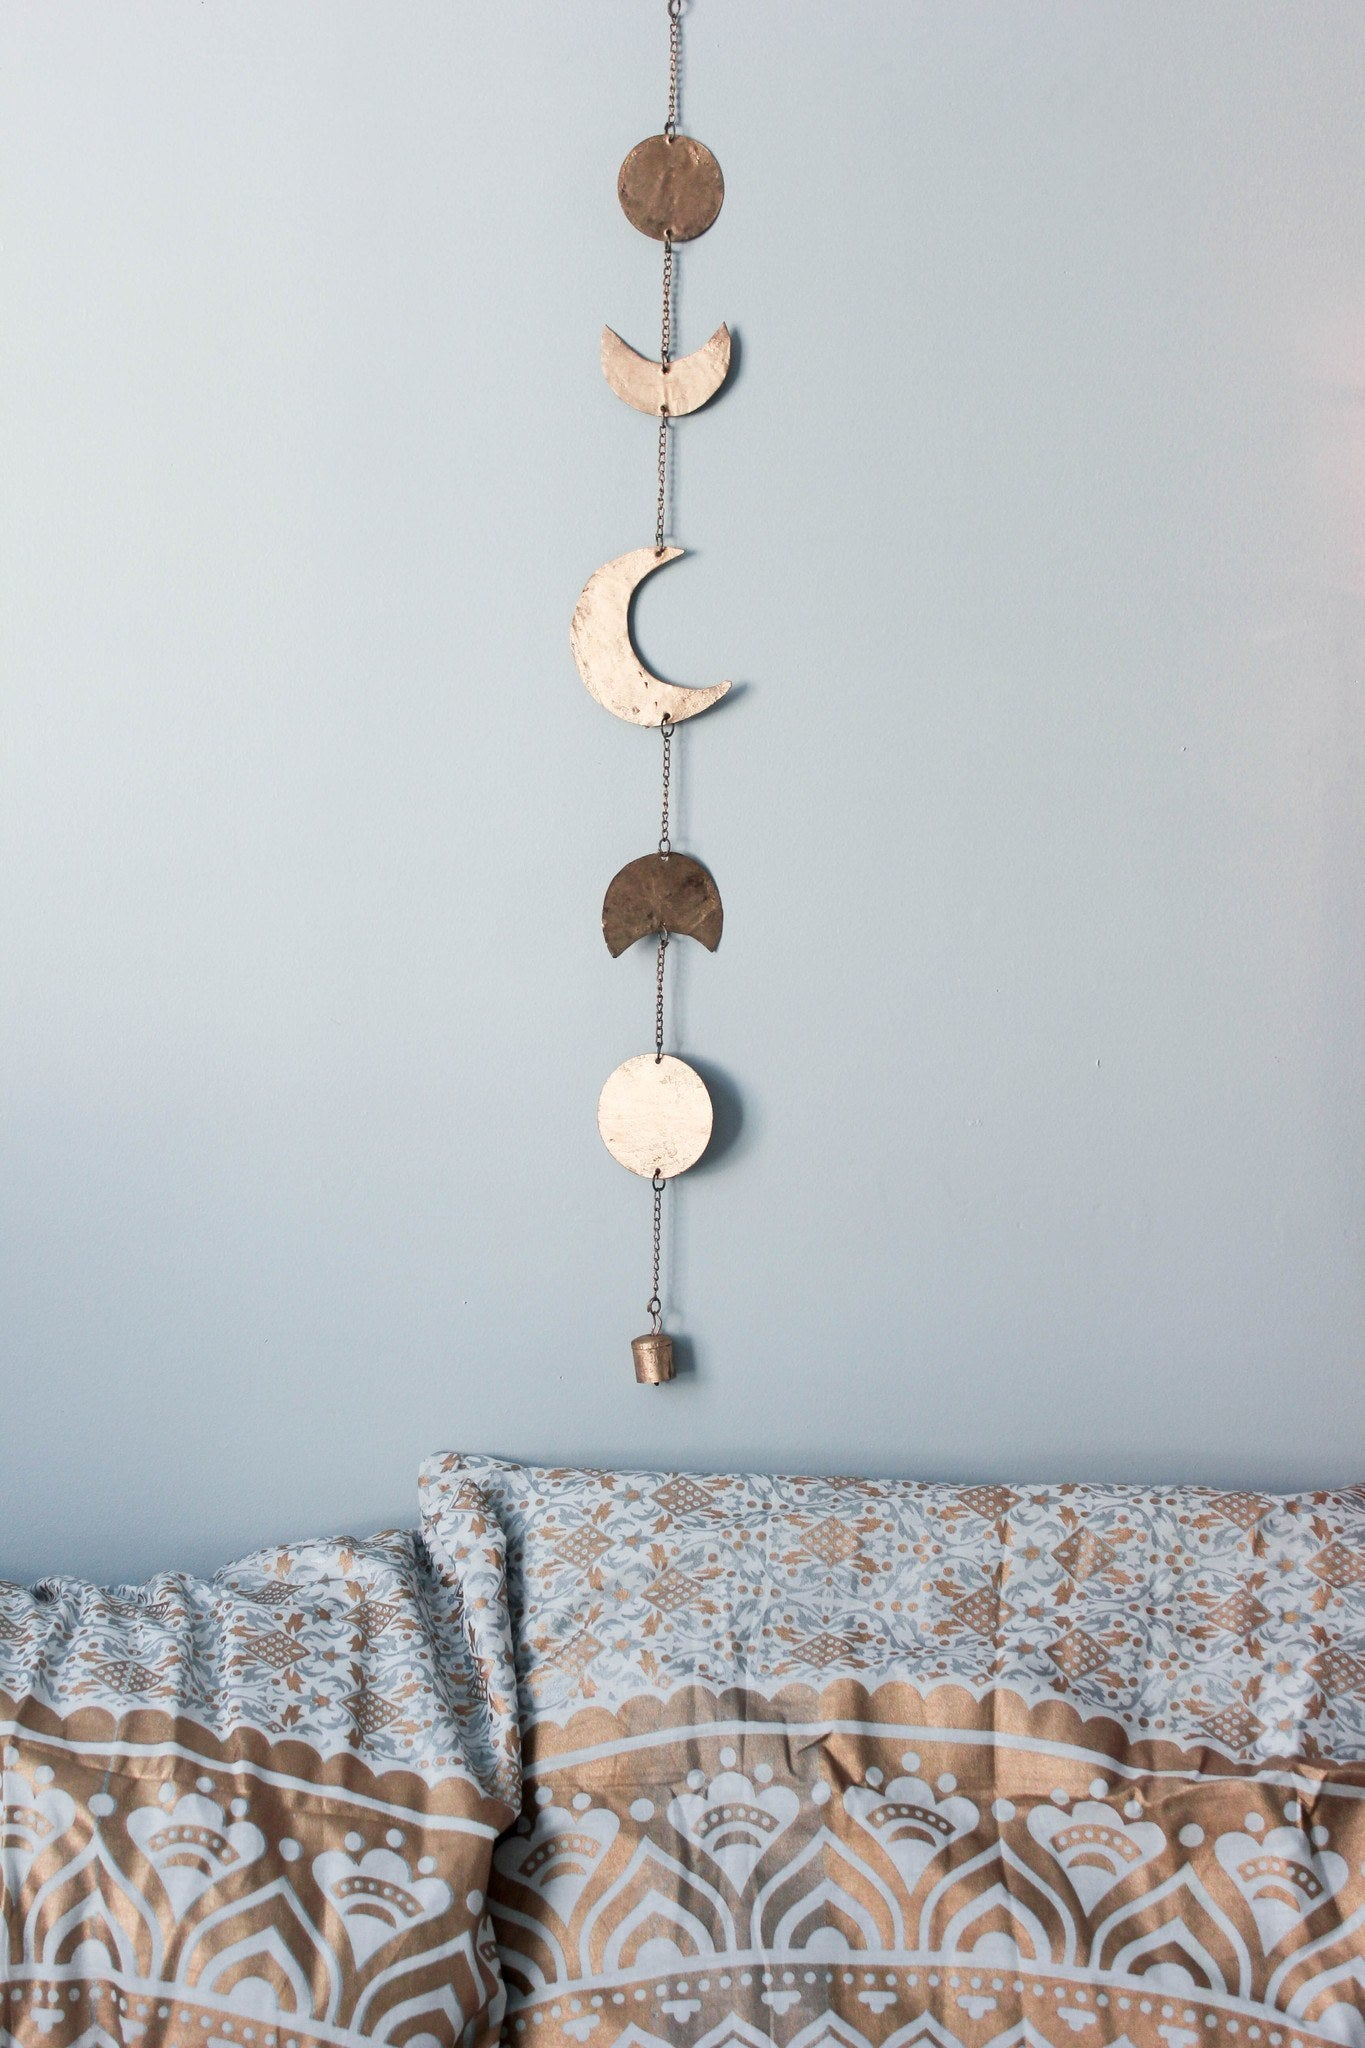 Wall Hanging Decor moon phases wall hanging decor | ladyscorpio101